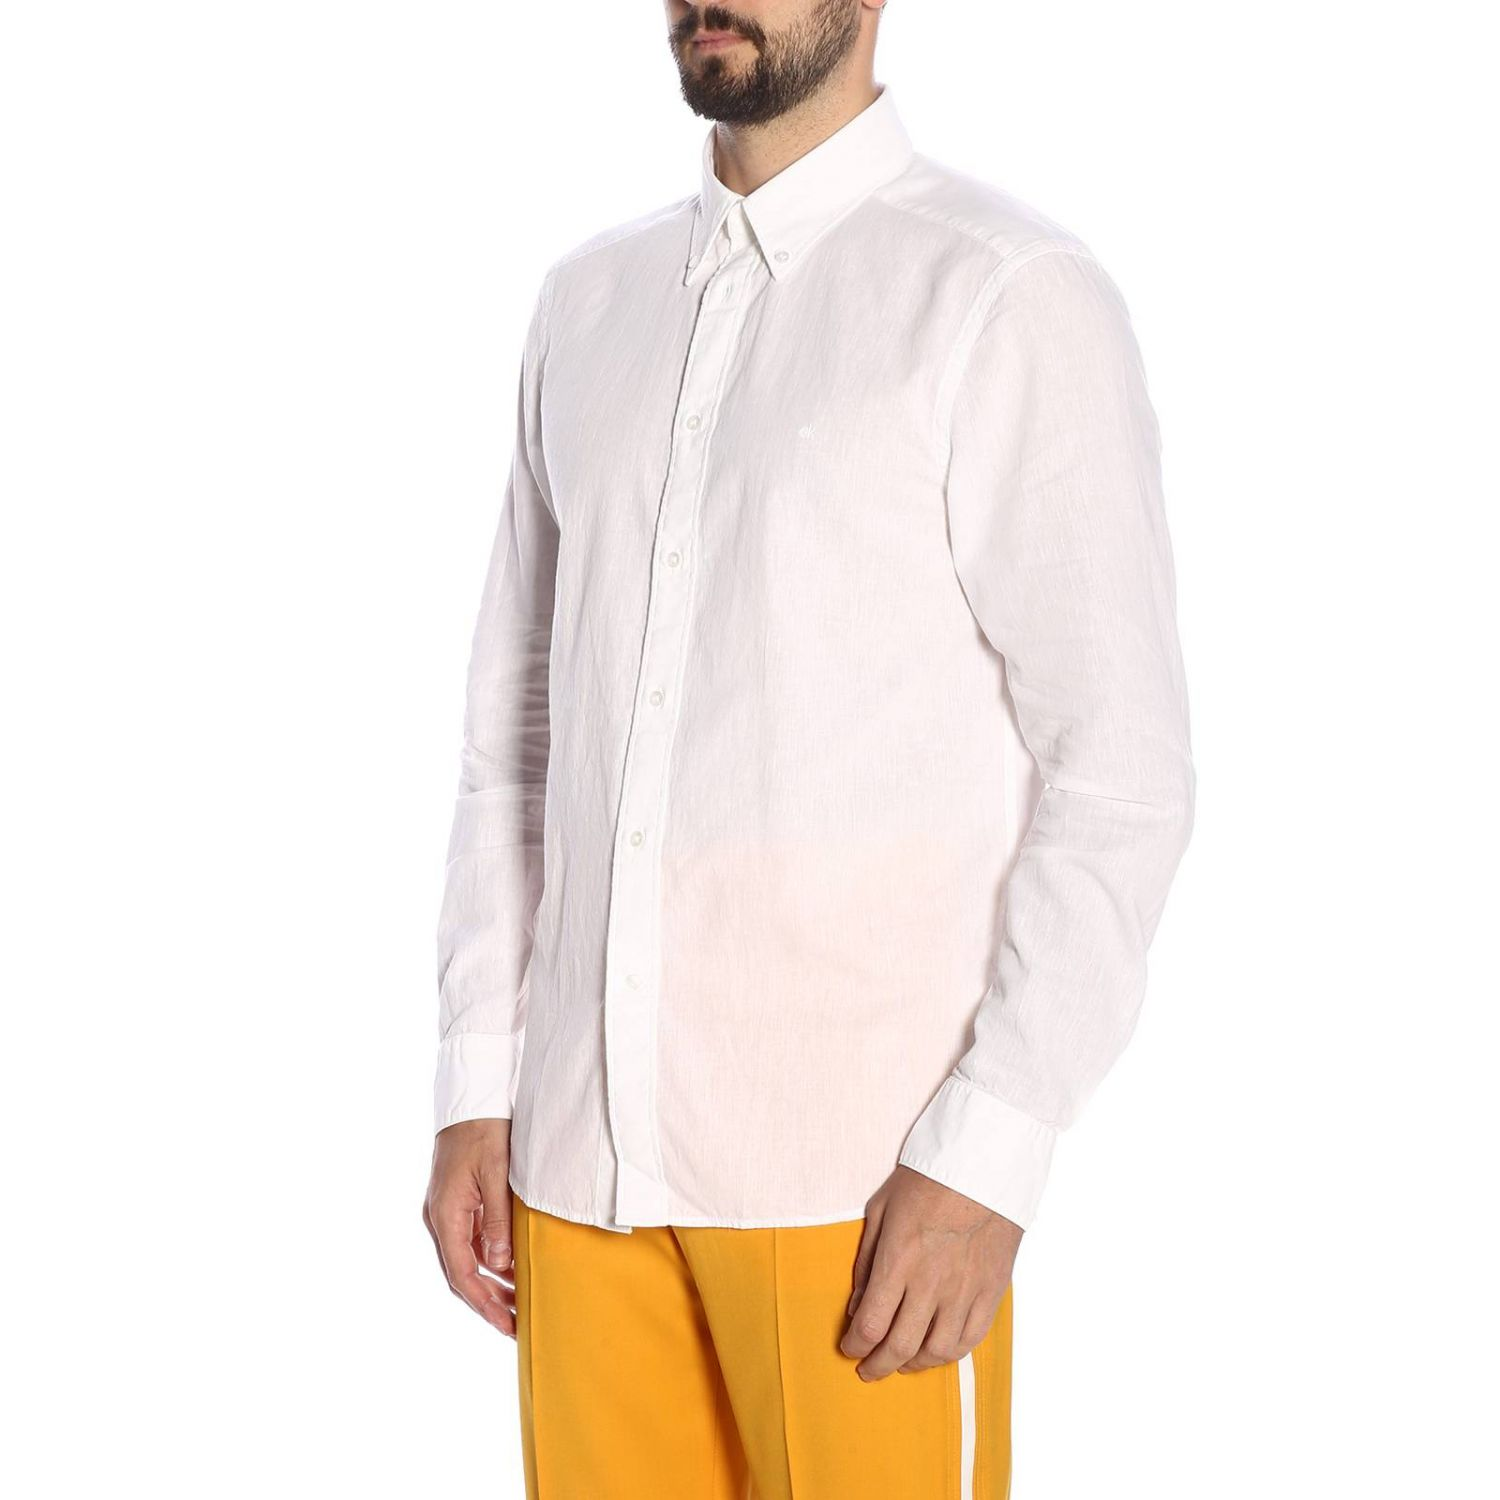 Shirt men Calvin Klein white 2